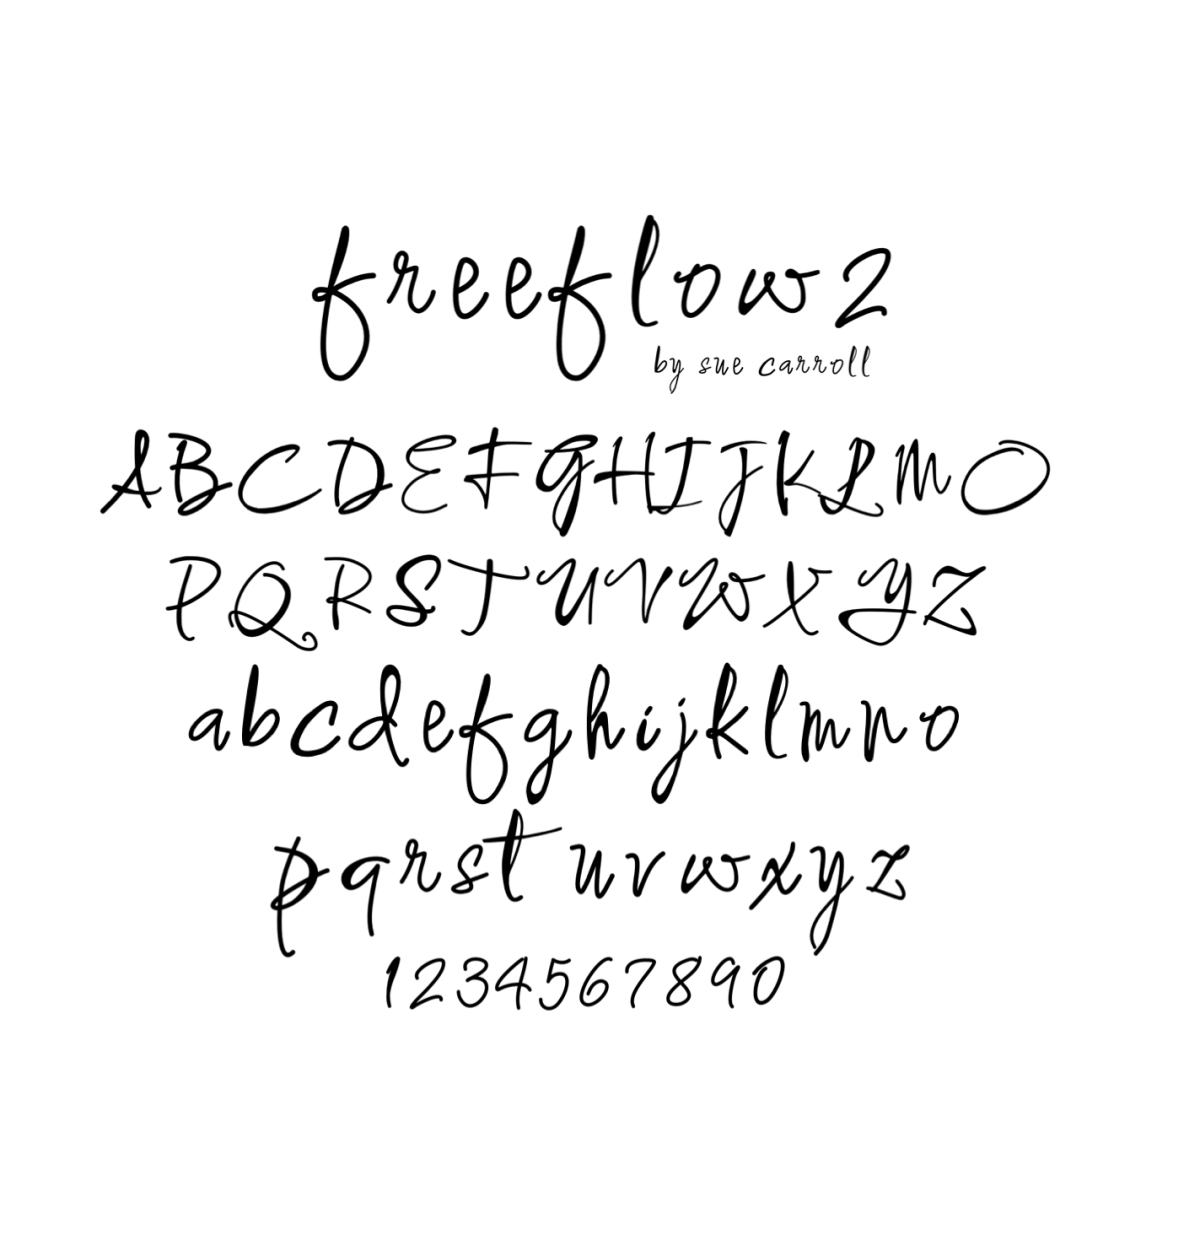 Freeflow2/downloadable font/bySueCarroll